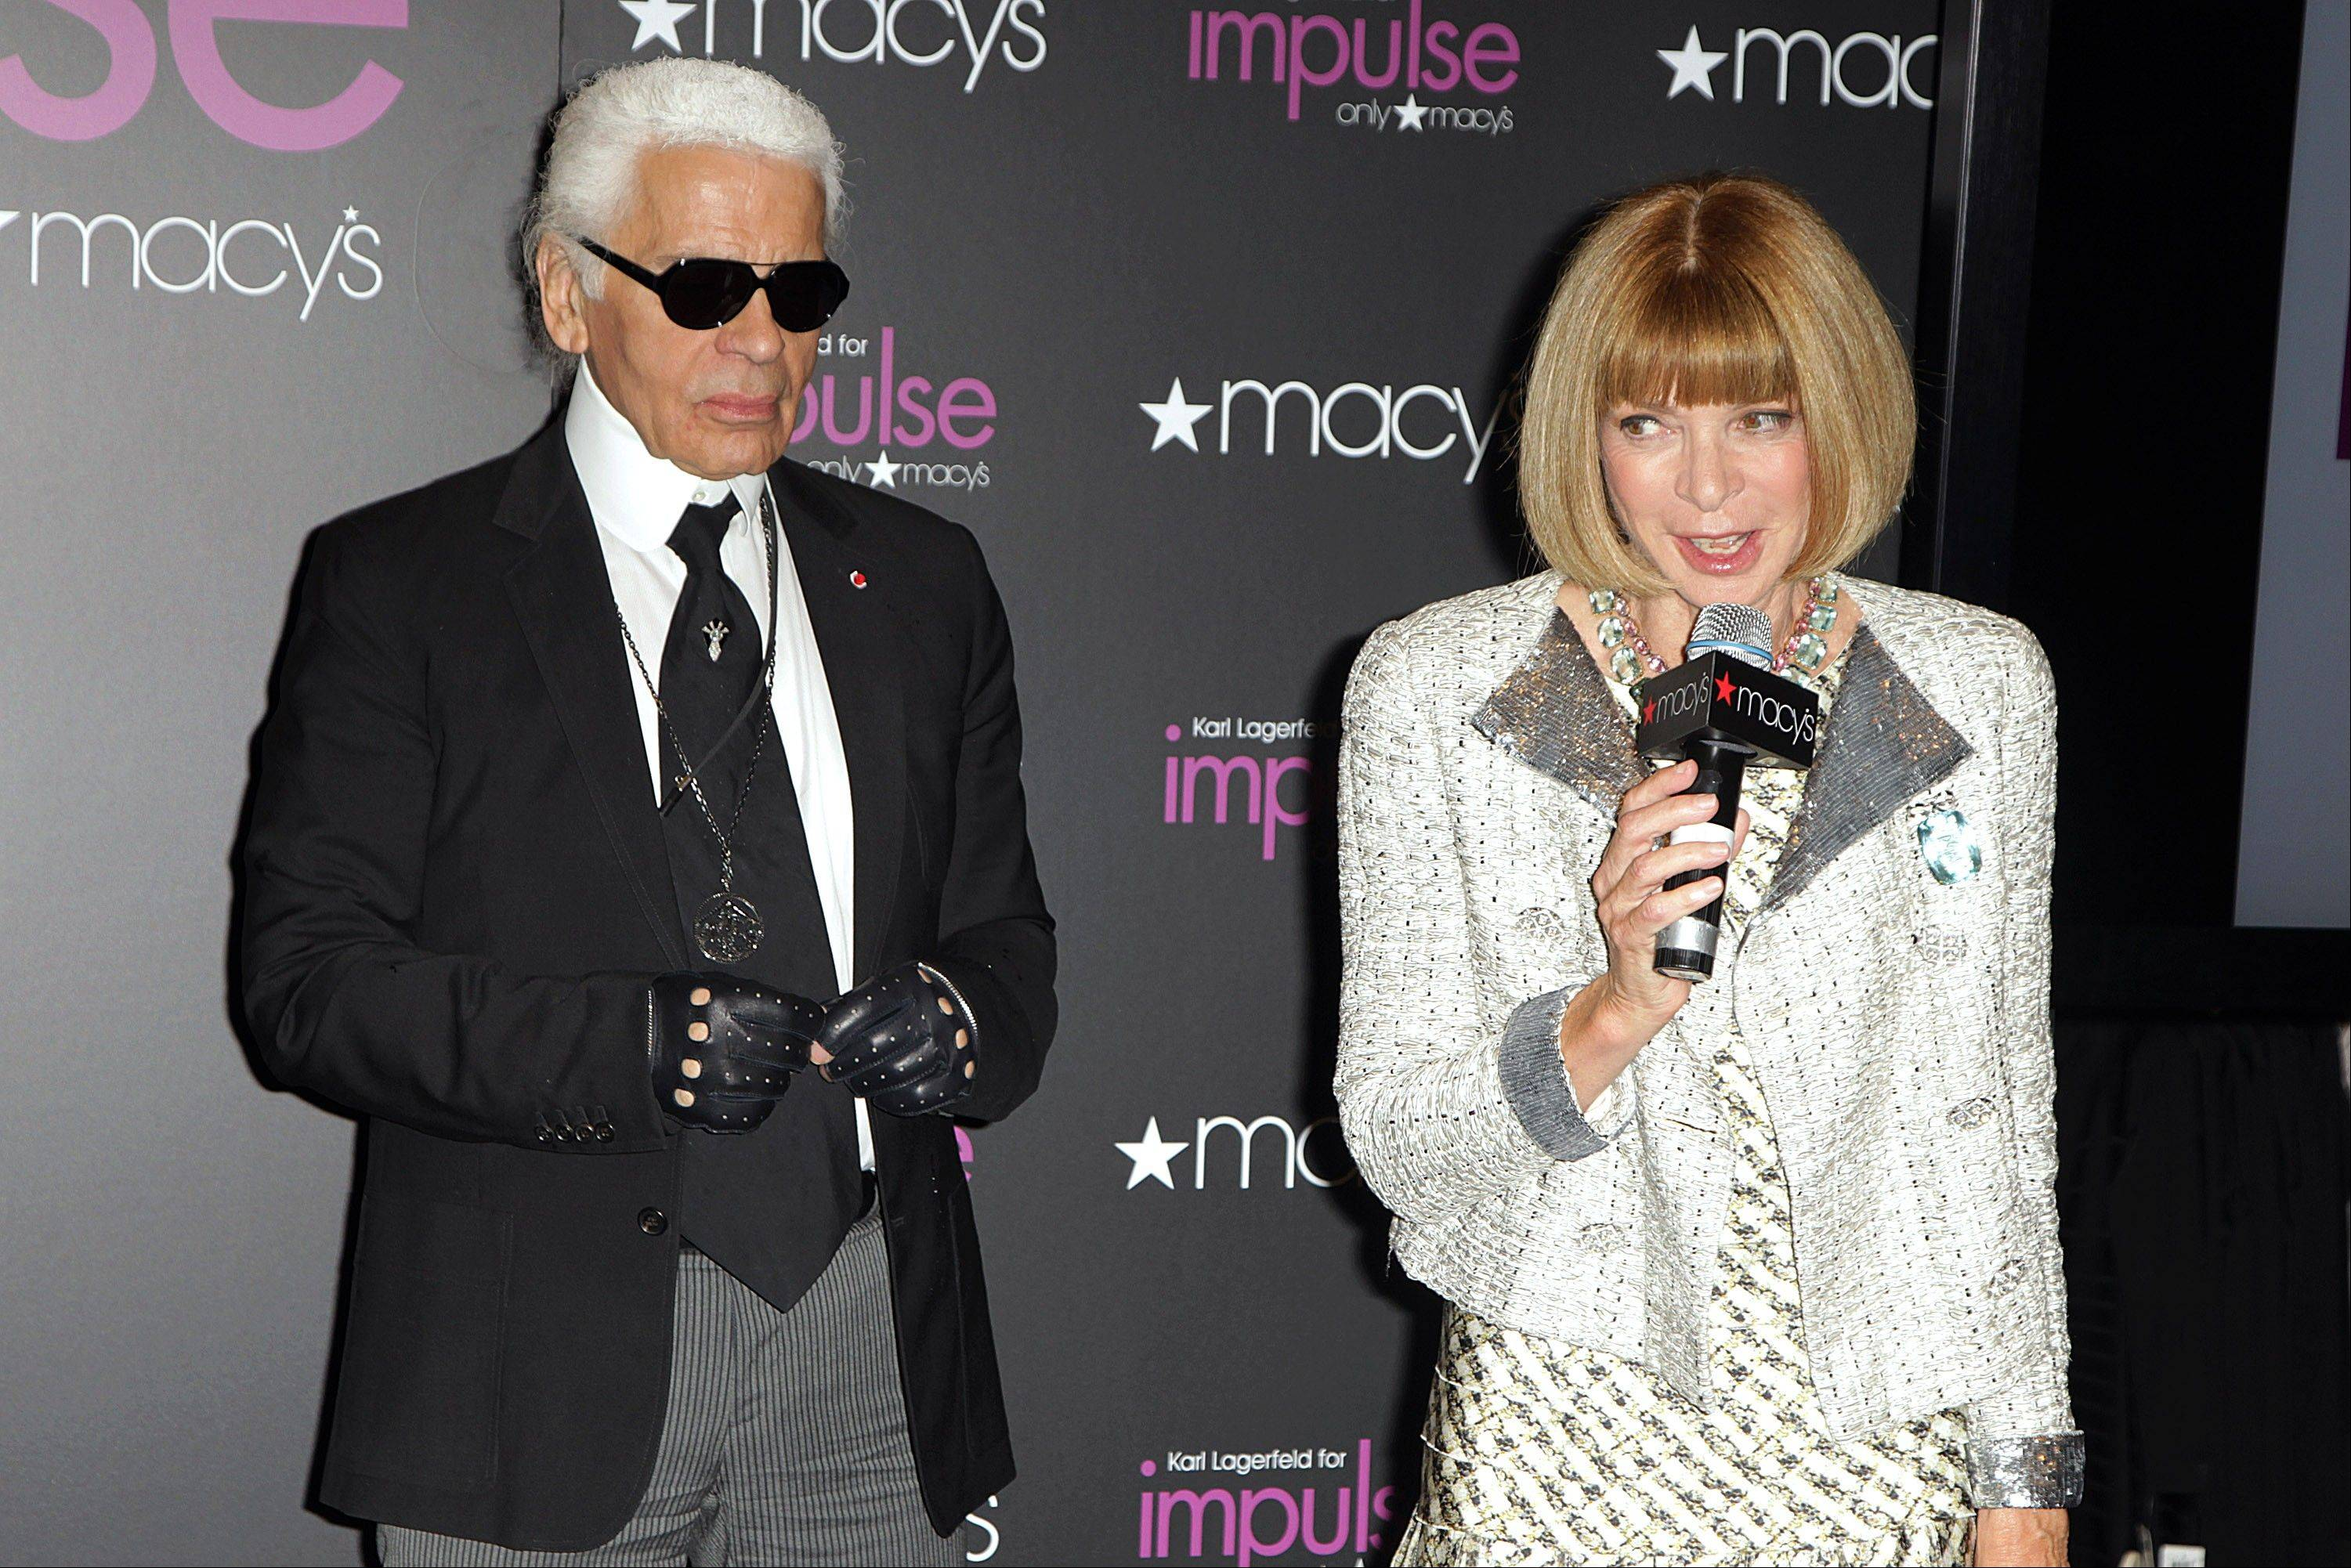 Fashion designer Karl Lagerfeld appears with Vogue editor Anna Wintour at Macy�s Herald Square flagship store where he unveiled his exclusive new collection, Karl Lagerfeld For Impulse Only, this week in New York.